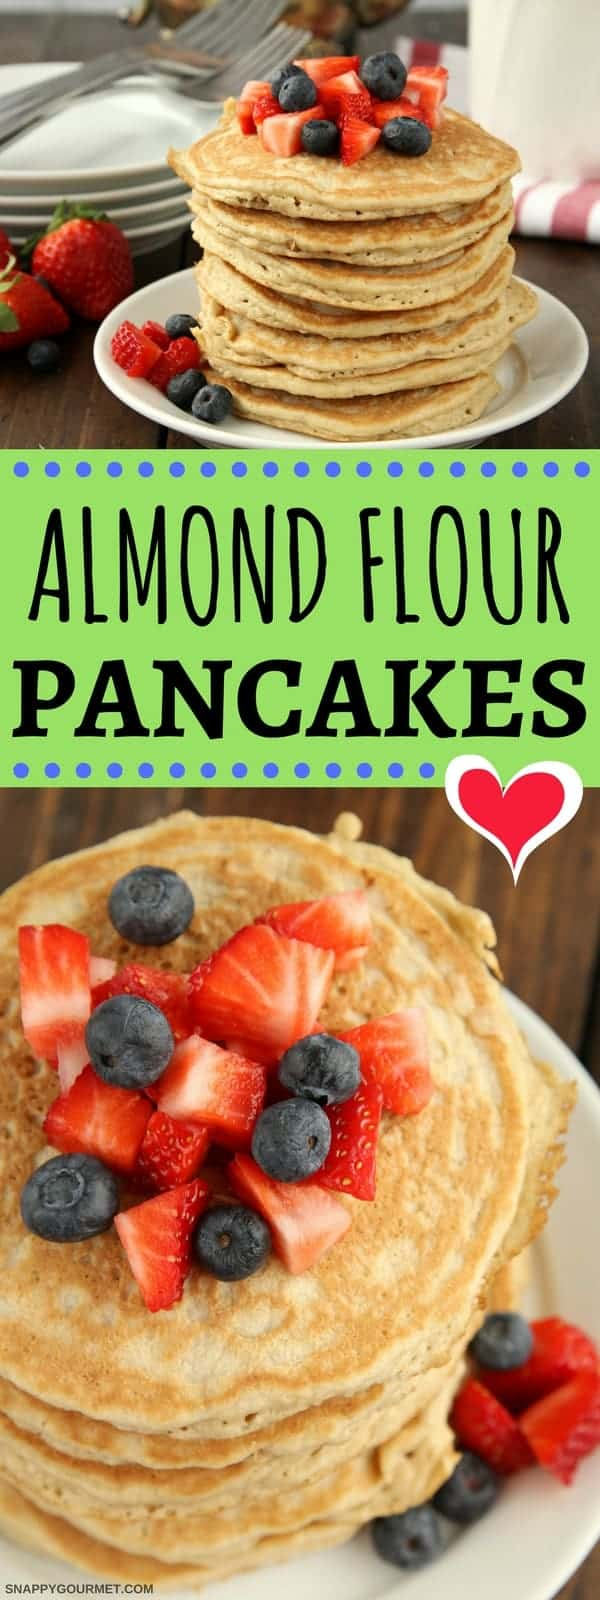 Almond Flour Pancakes - easy gluten free pancakes made in a blender!